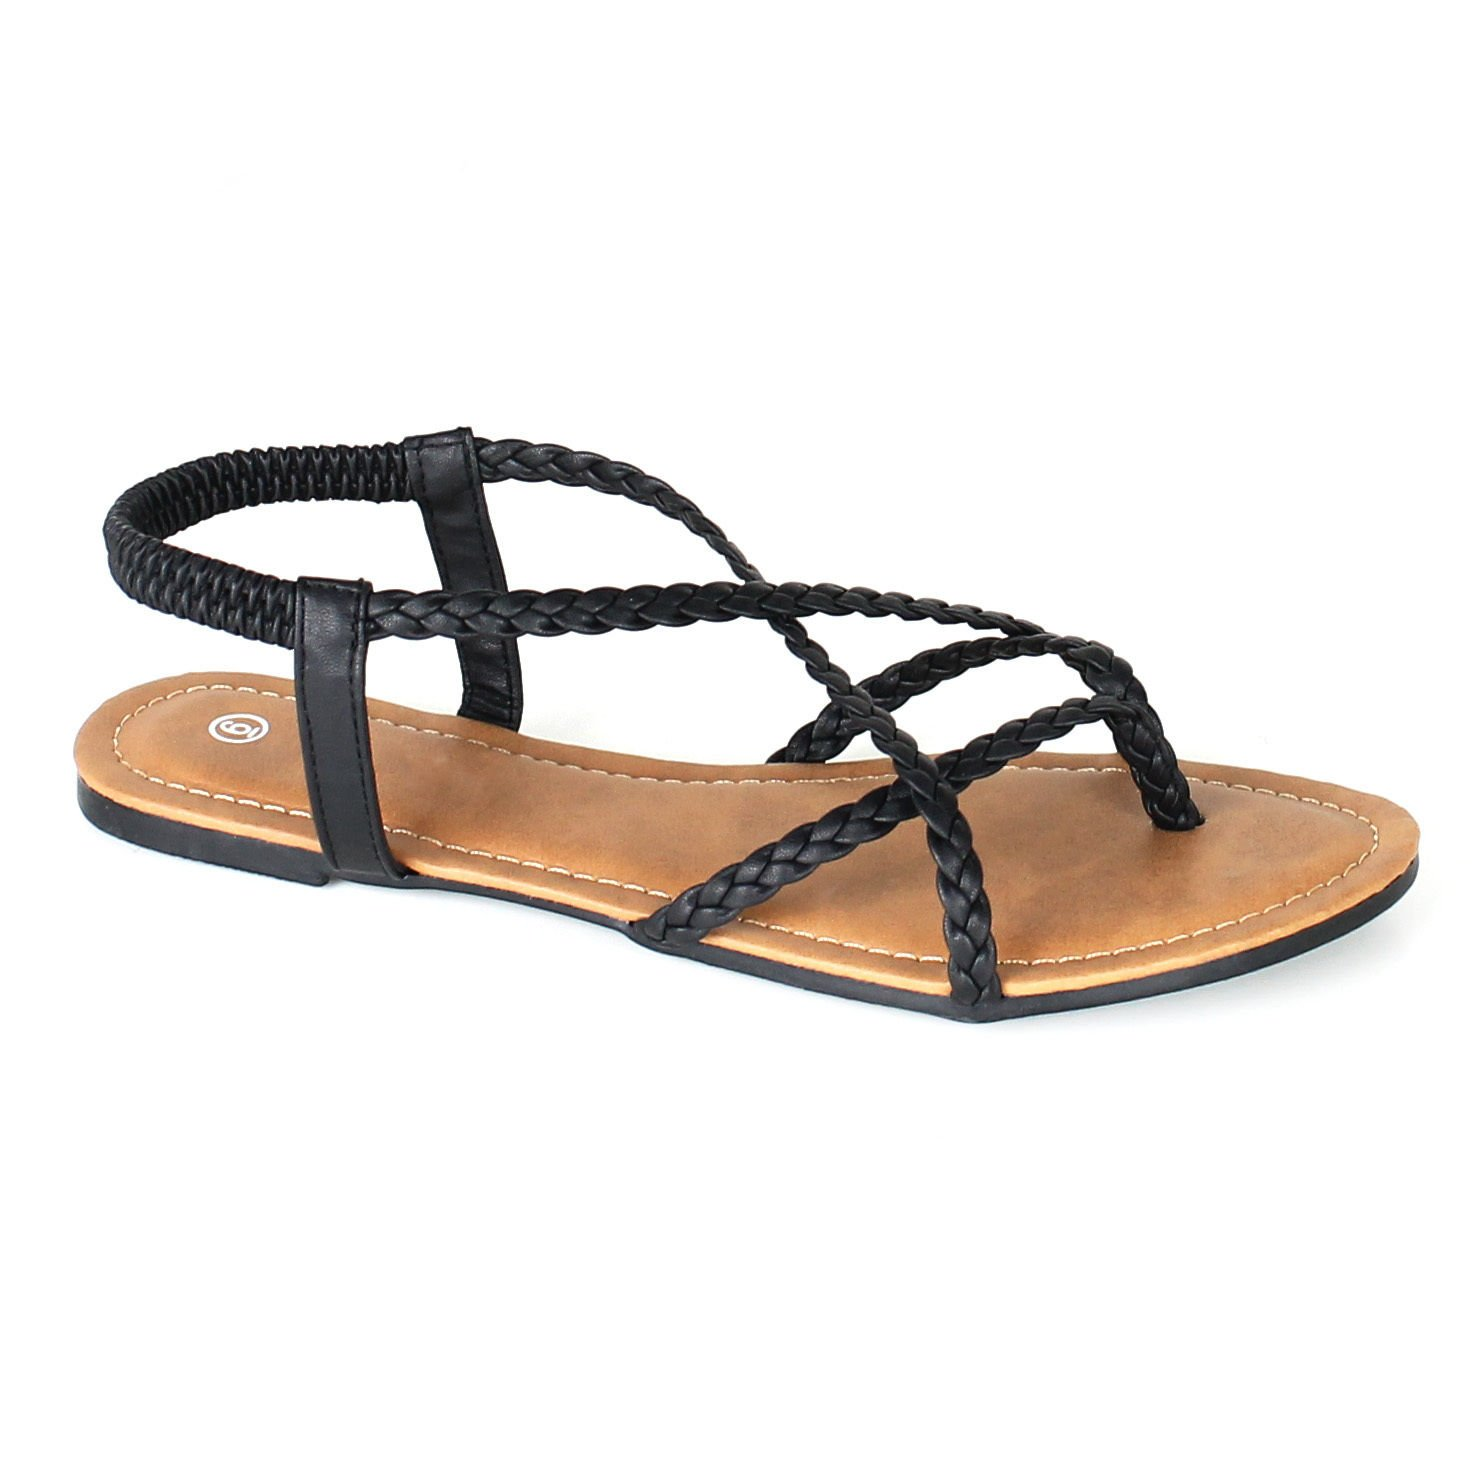 Anna Home Collection Anna Women's Braided Strappy Gladiator Flat Sandal Y-Strap Thing Flip Flop Sandals Black